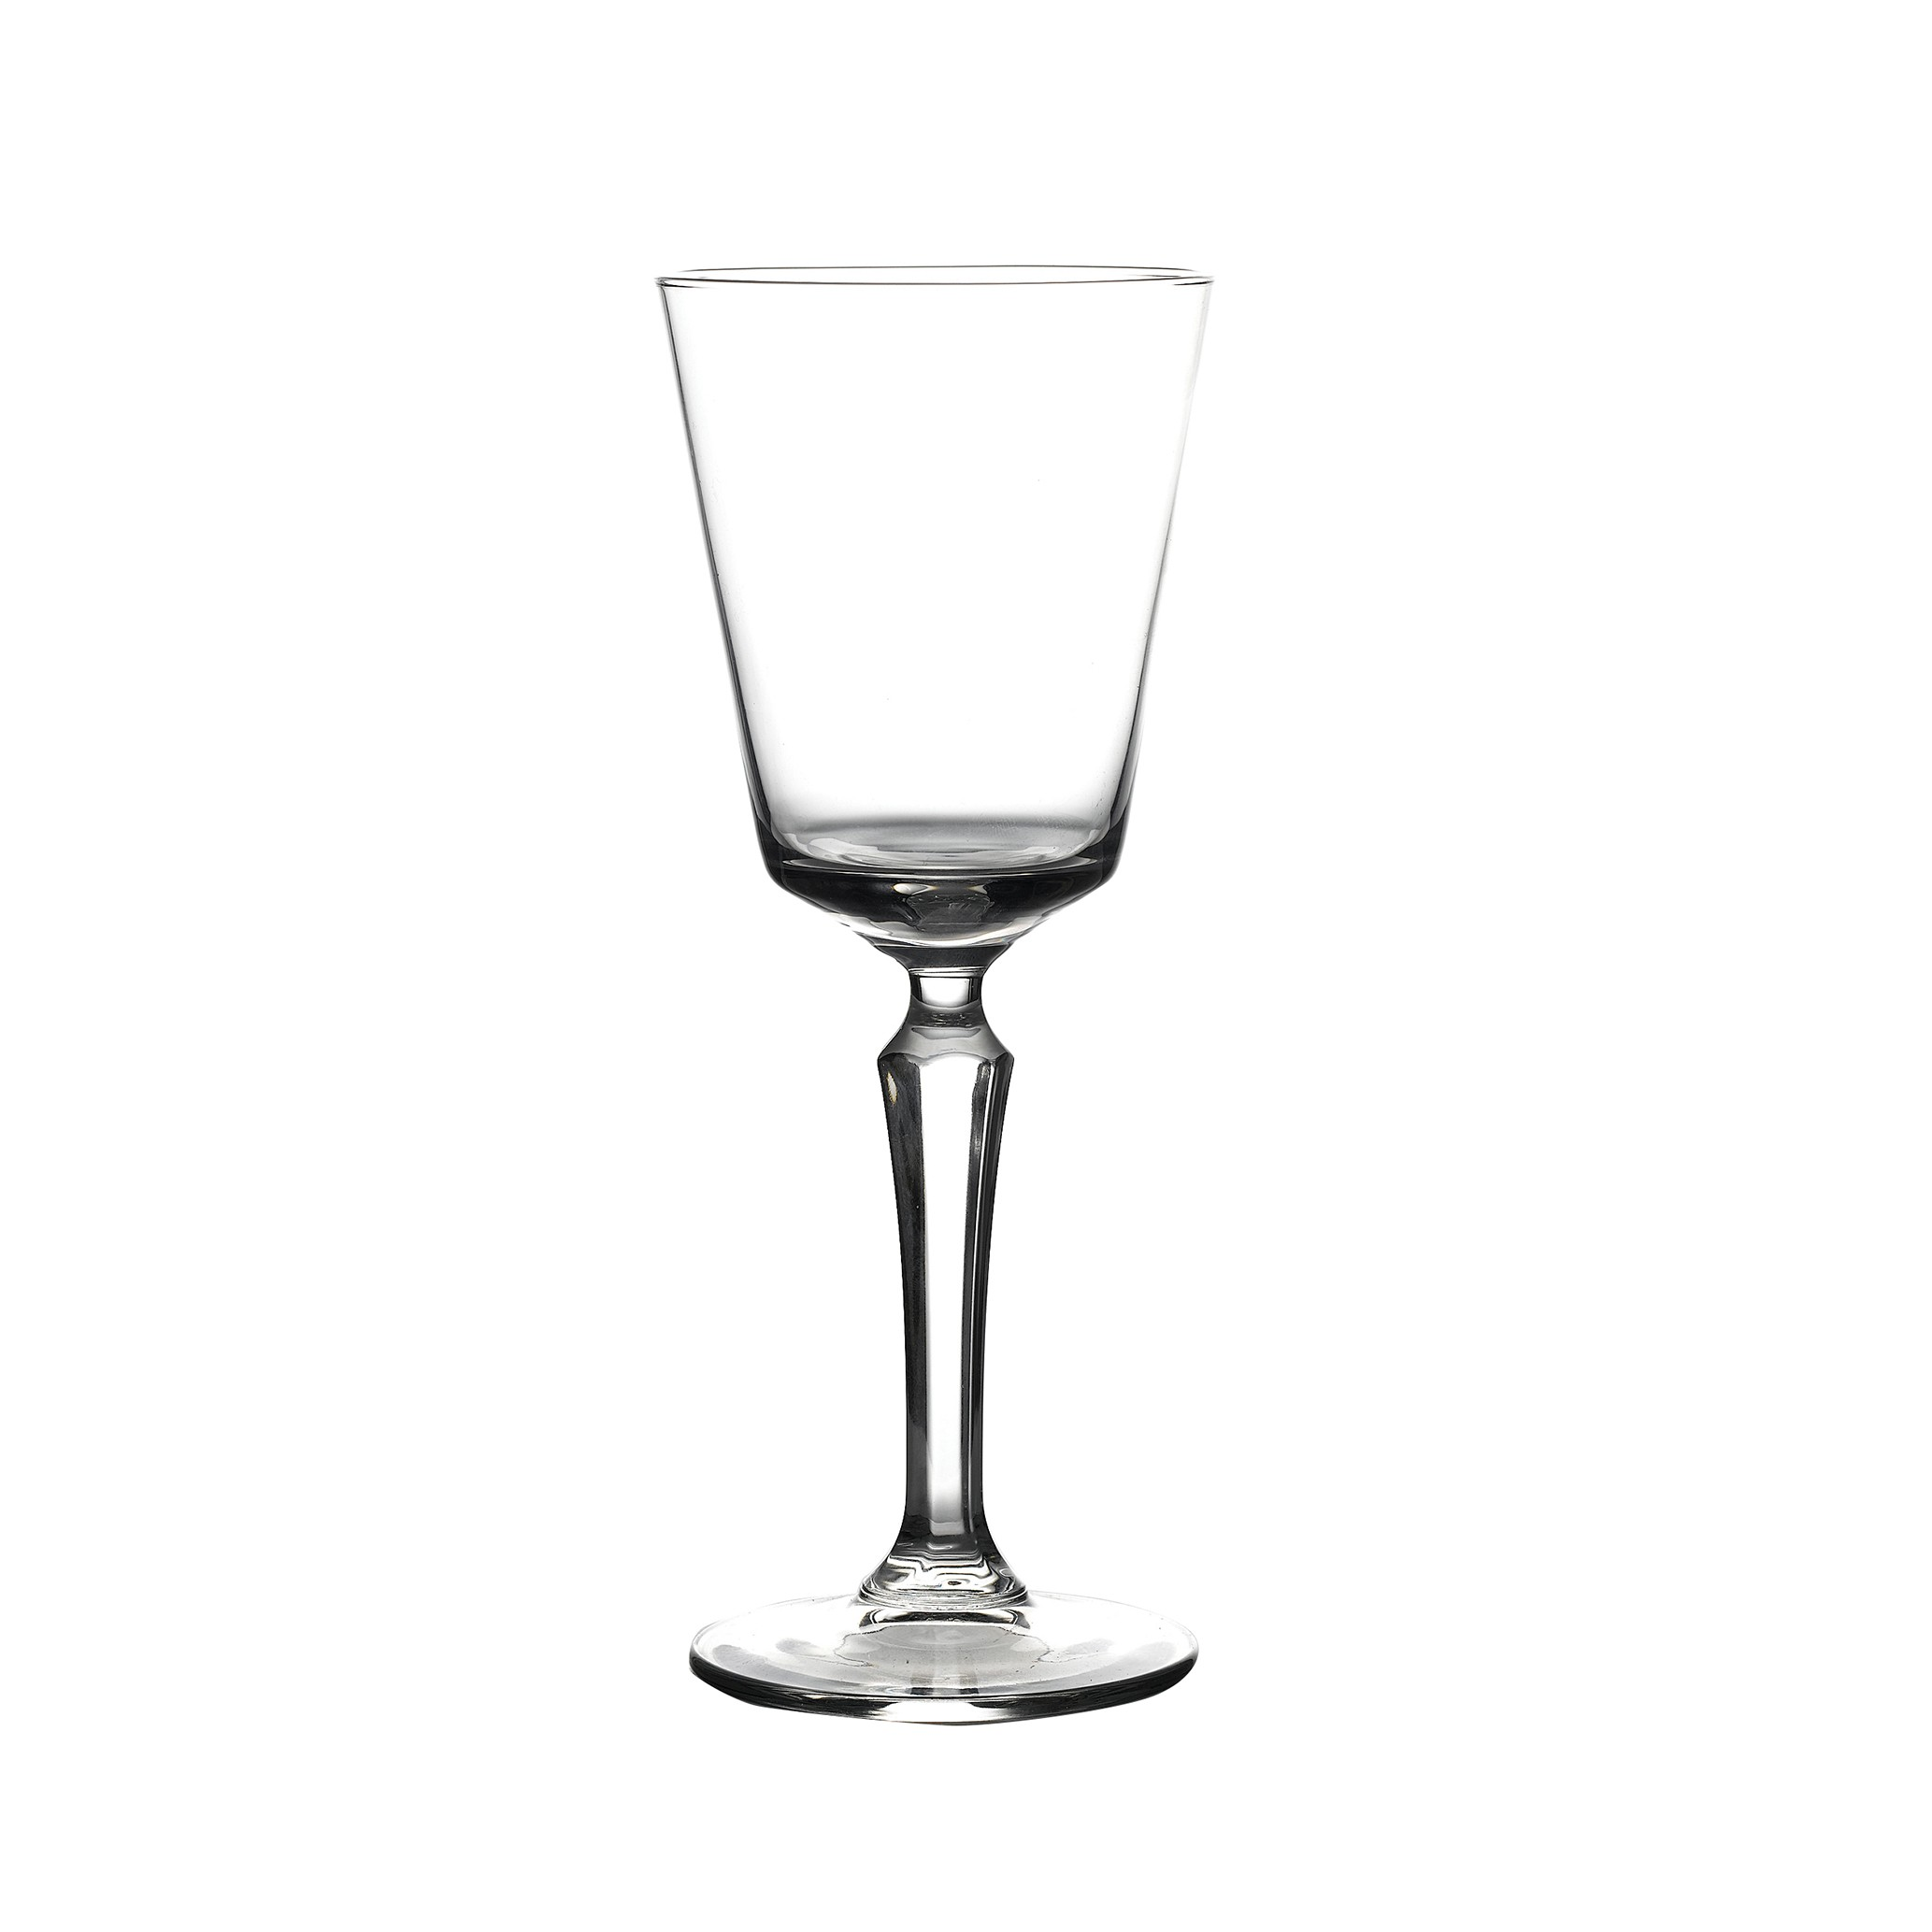 Speakeasy Cocktail / Wine Glasses 8oz 24cl